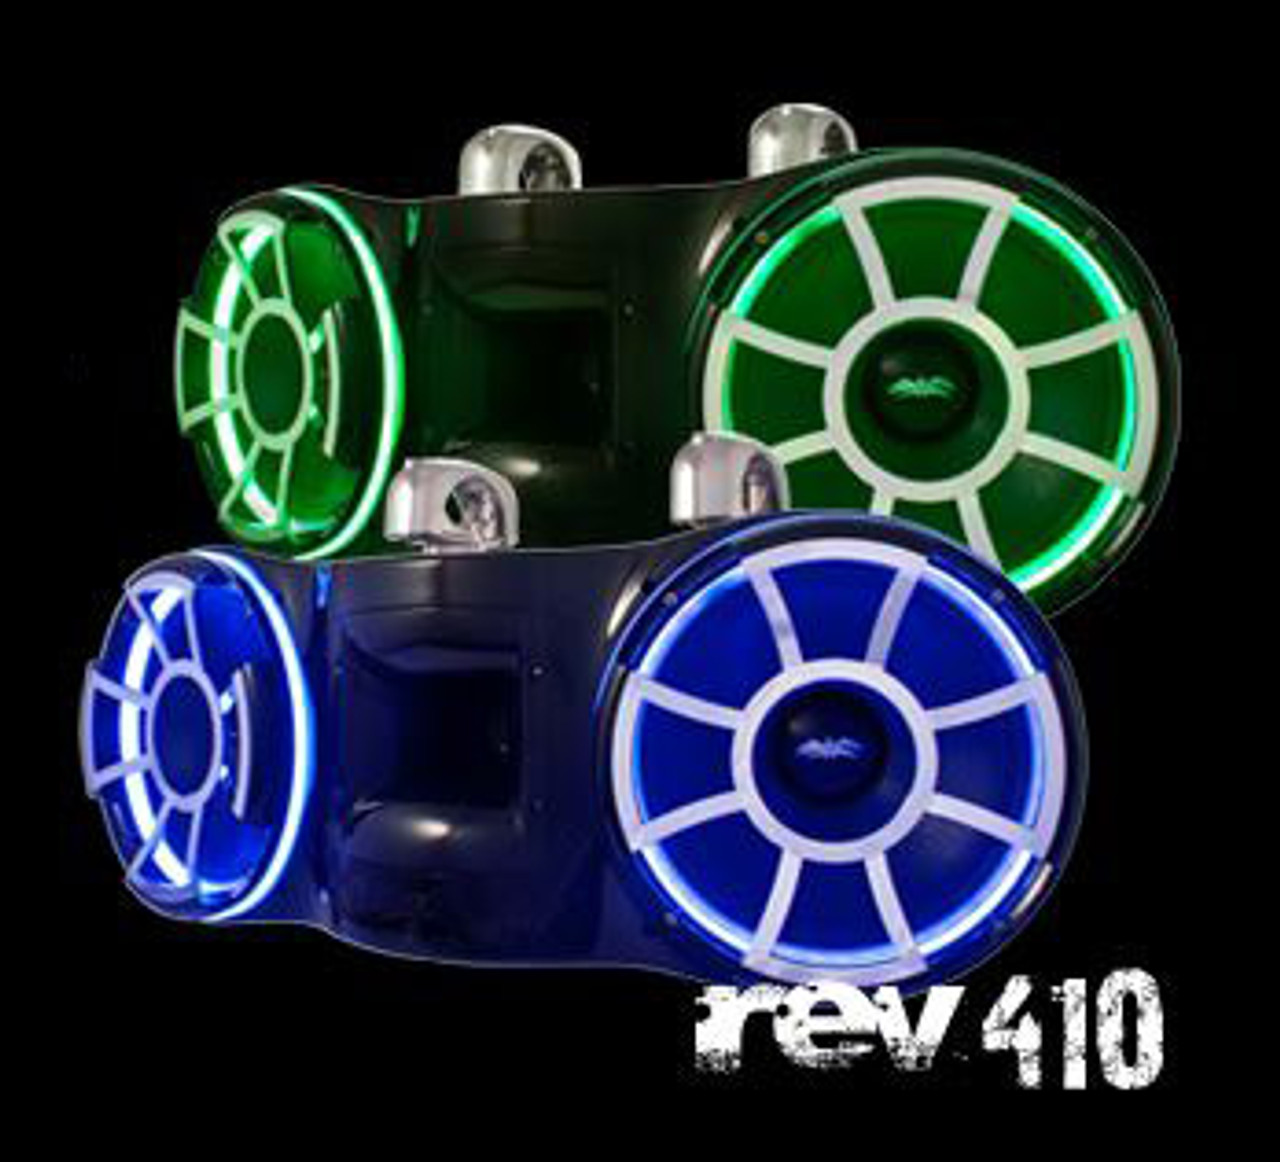 Rev 410 with LED Rings